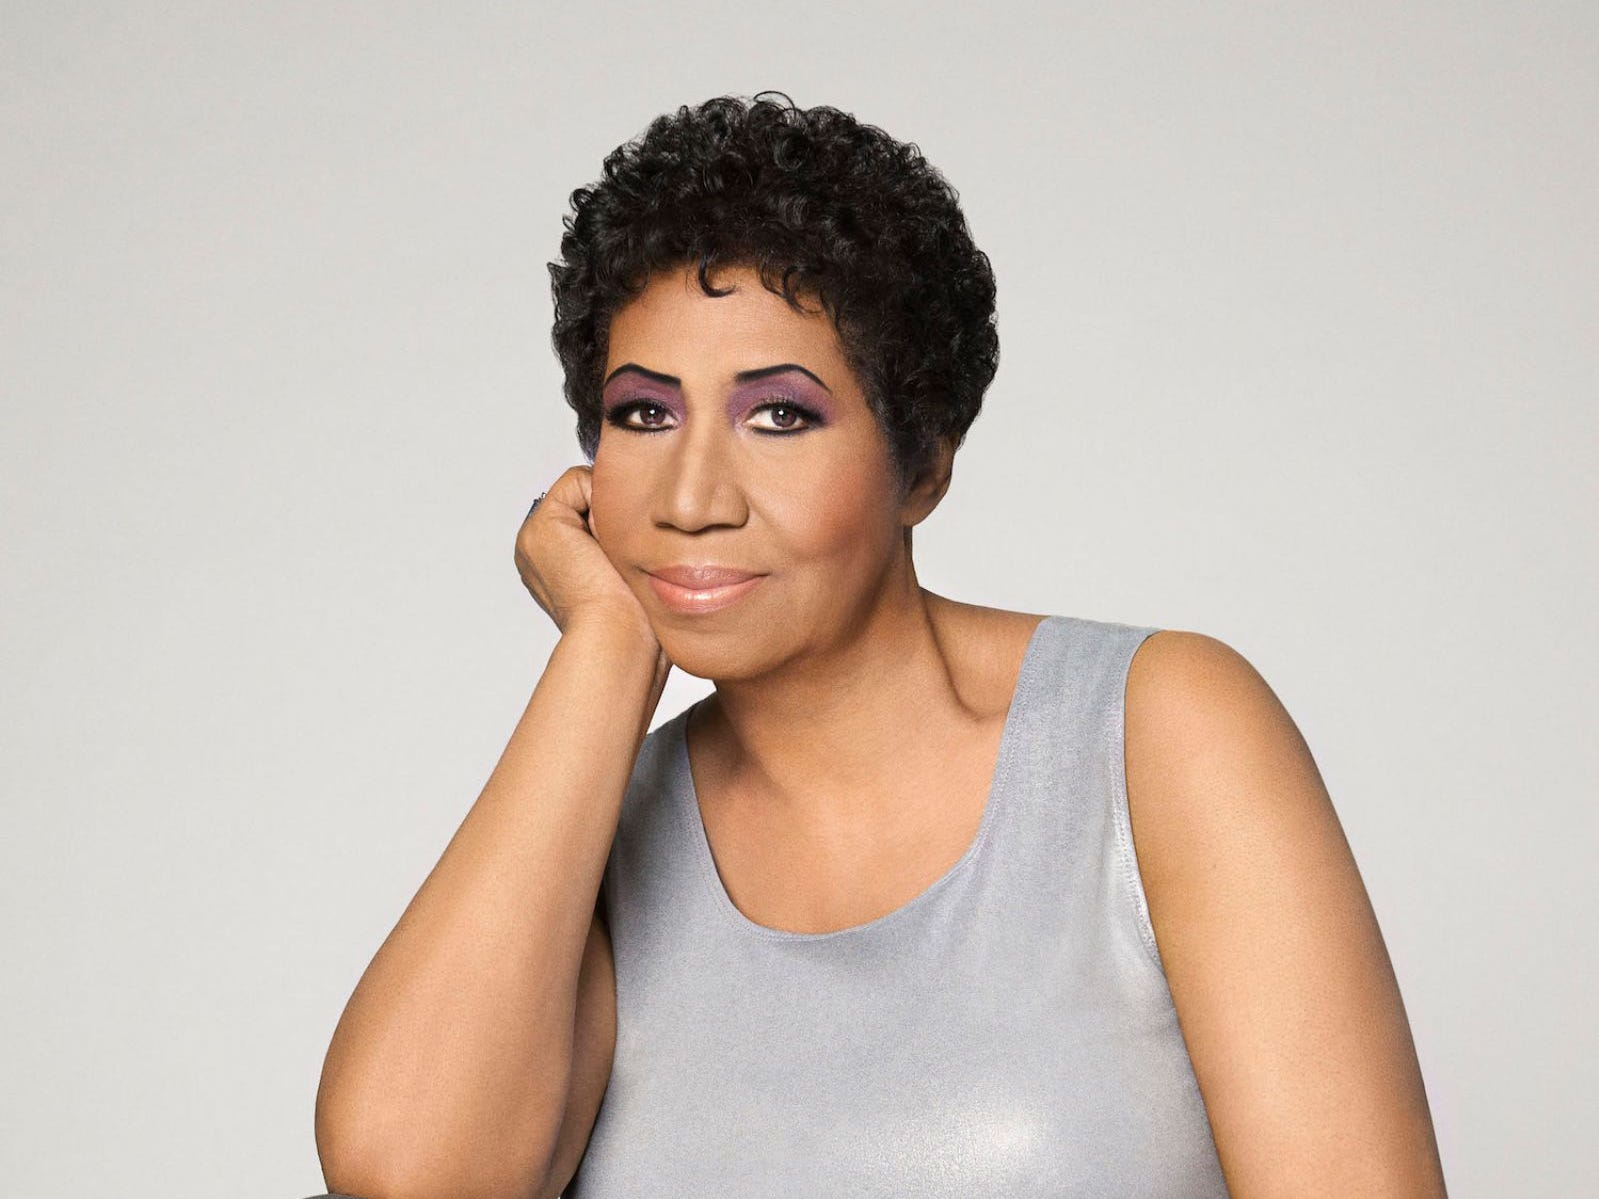 Aretha Franklin. Photographed in Detroit, MI April 7th, 2014.